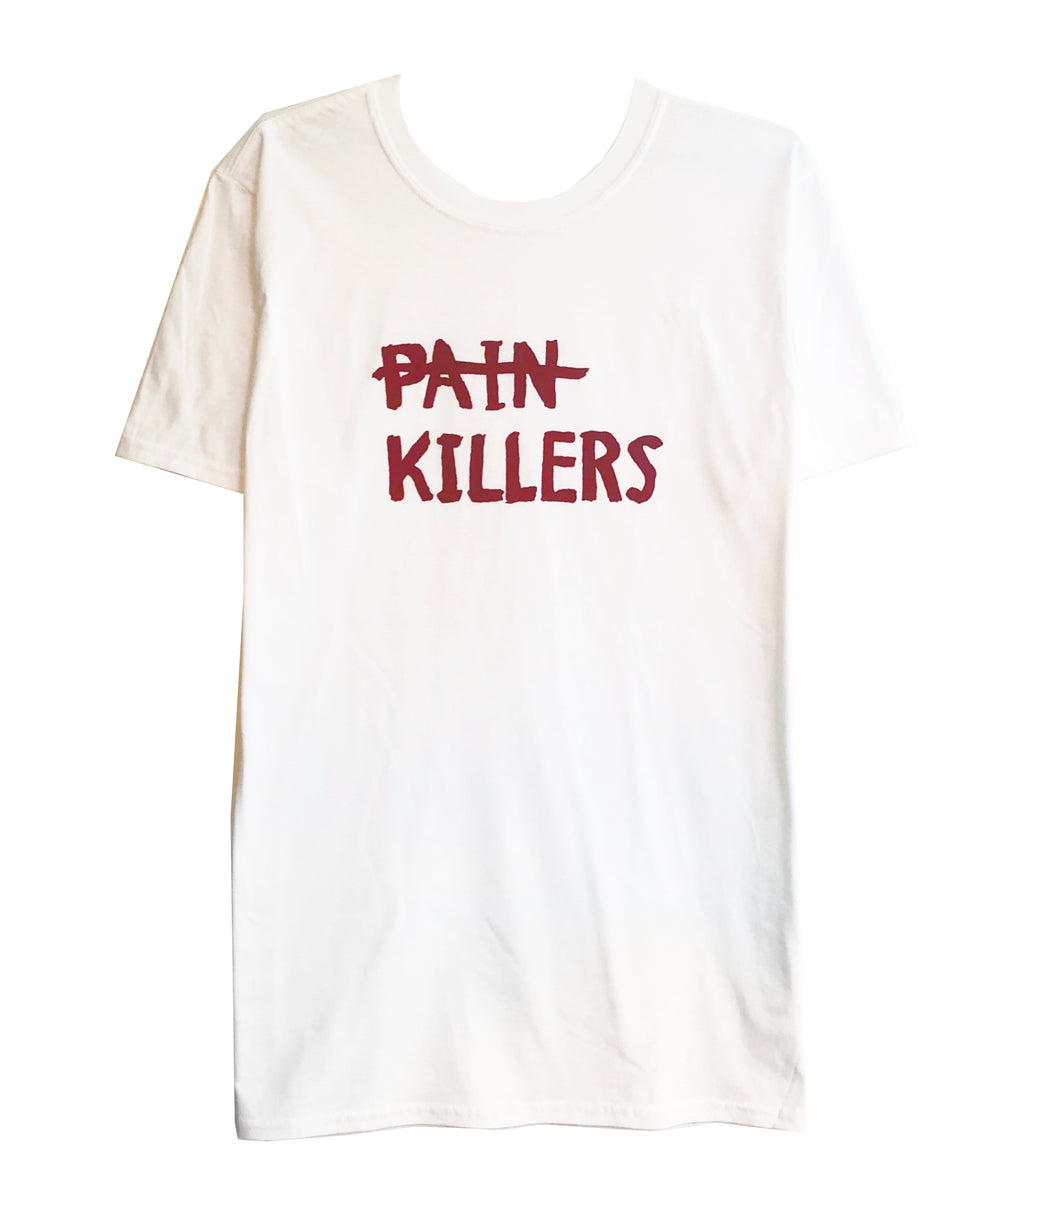 Pain Killers T-Shirt